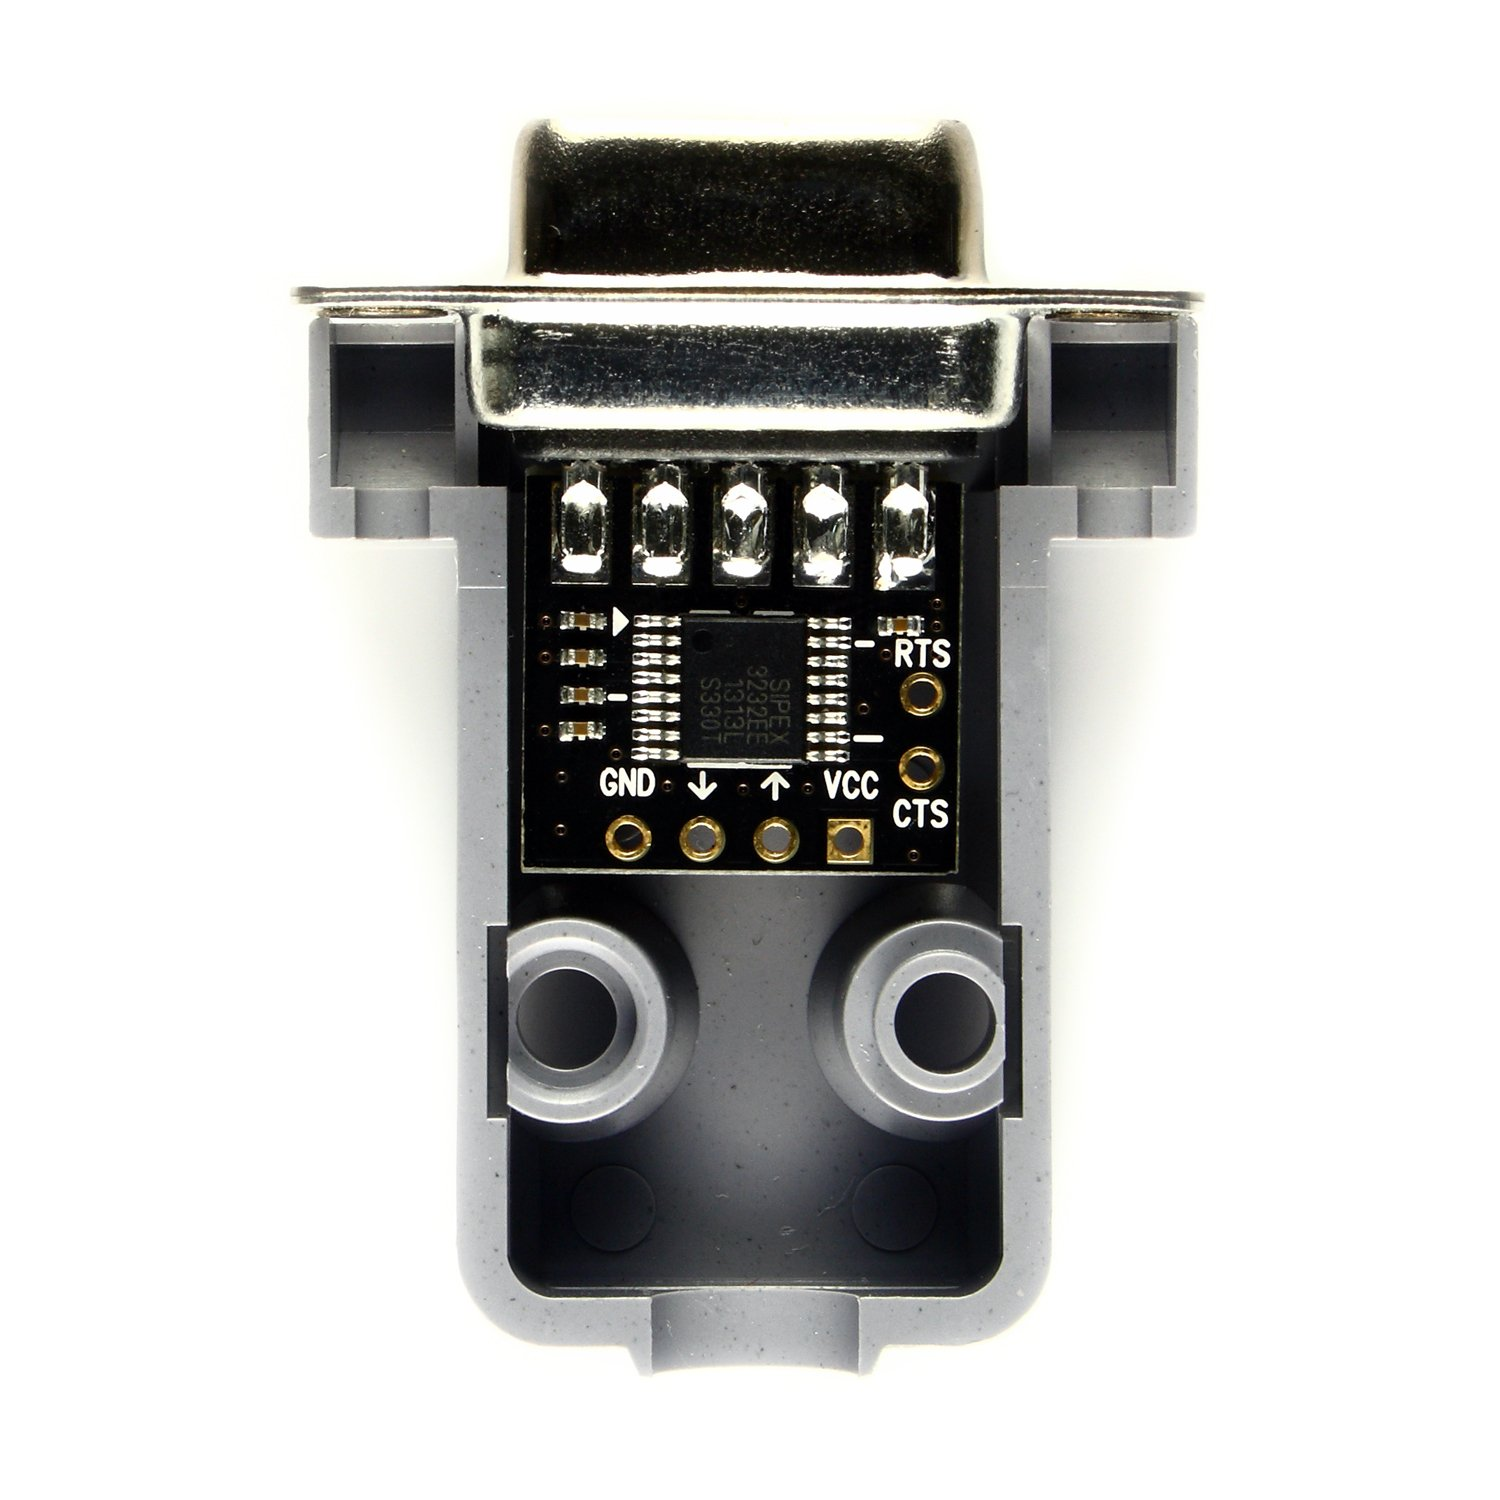 NulSom Inc. Ultra Compact RS232 to TTL Converter with Female DB9 and Hood Kit (3.3V to 5V) by NulSom Inc. (Image #3)